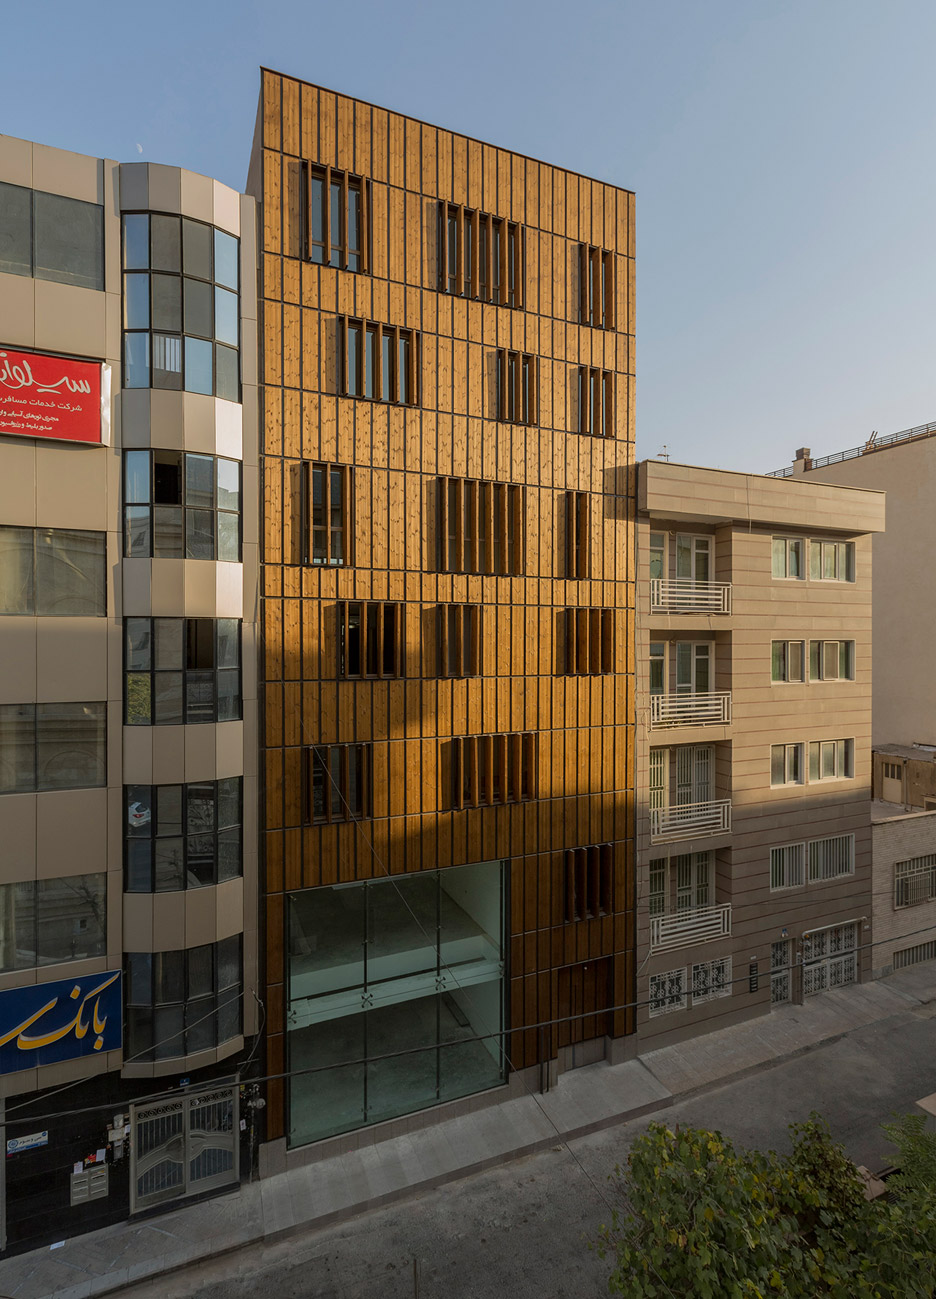 office-block-tehran-lp2-architecture-studio-iran-commercial-facade-connection-relationship-interior-exterior-wood_dezeen_936_13